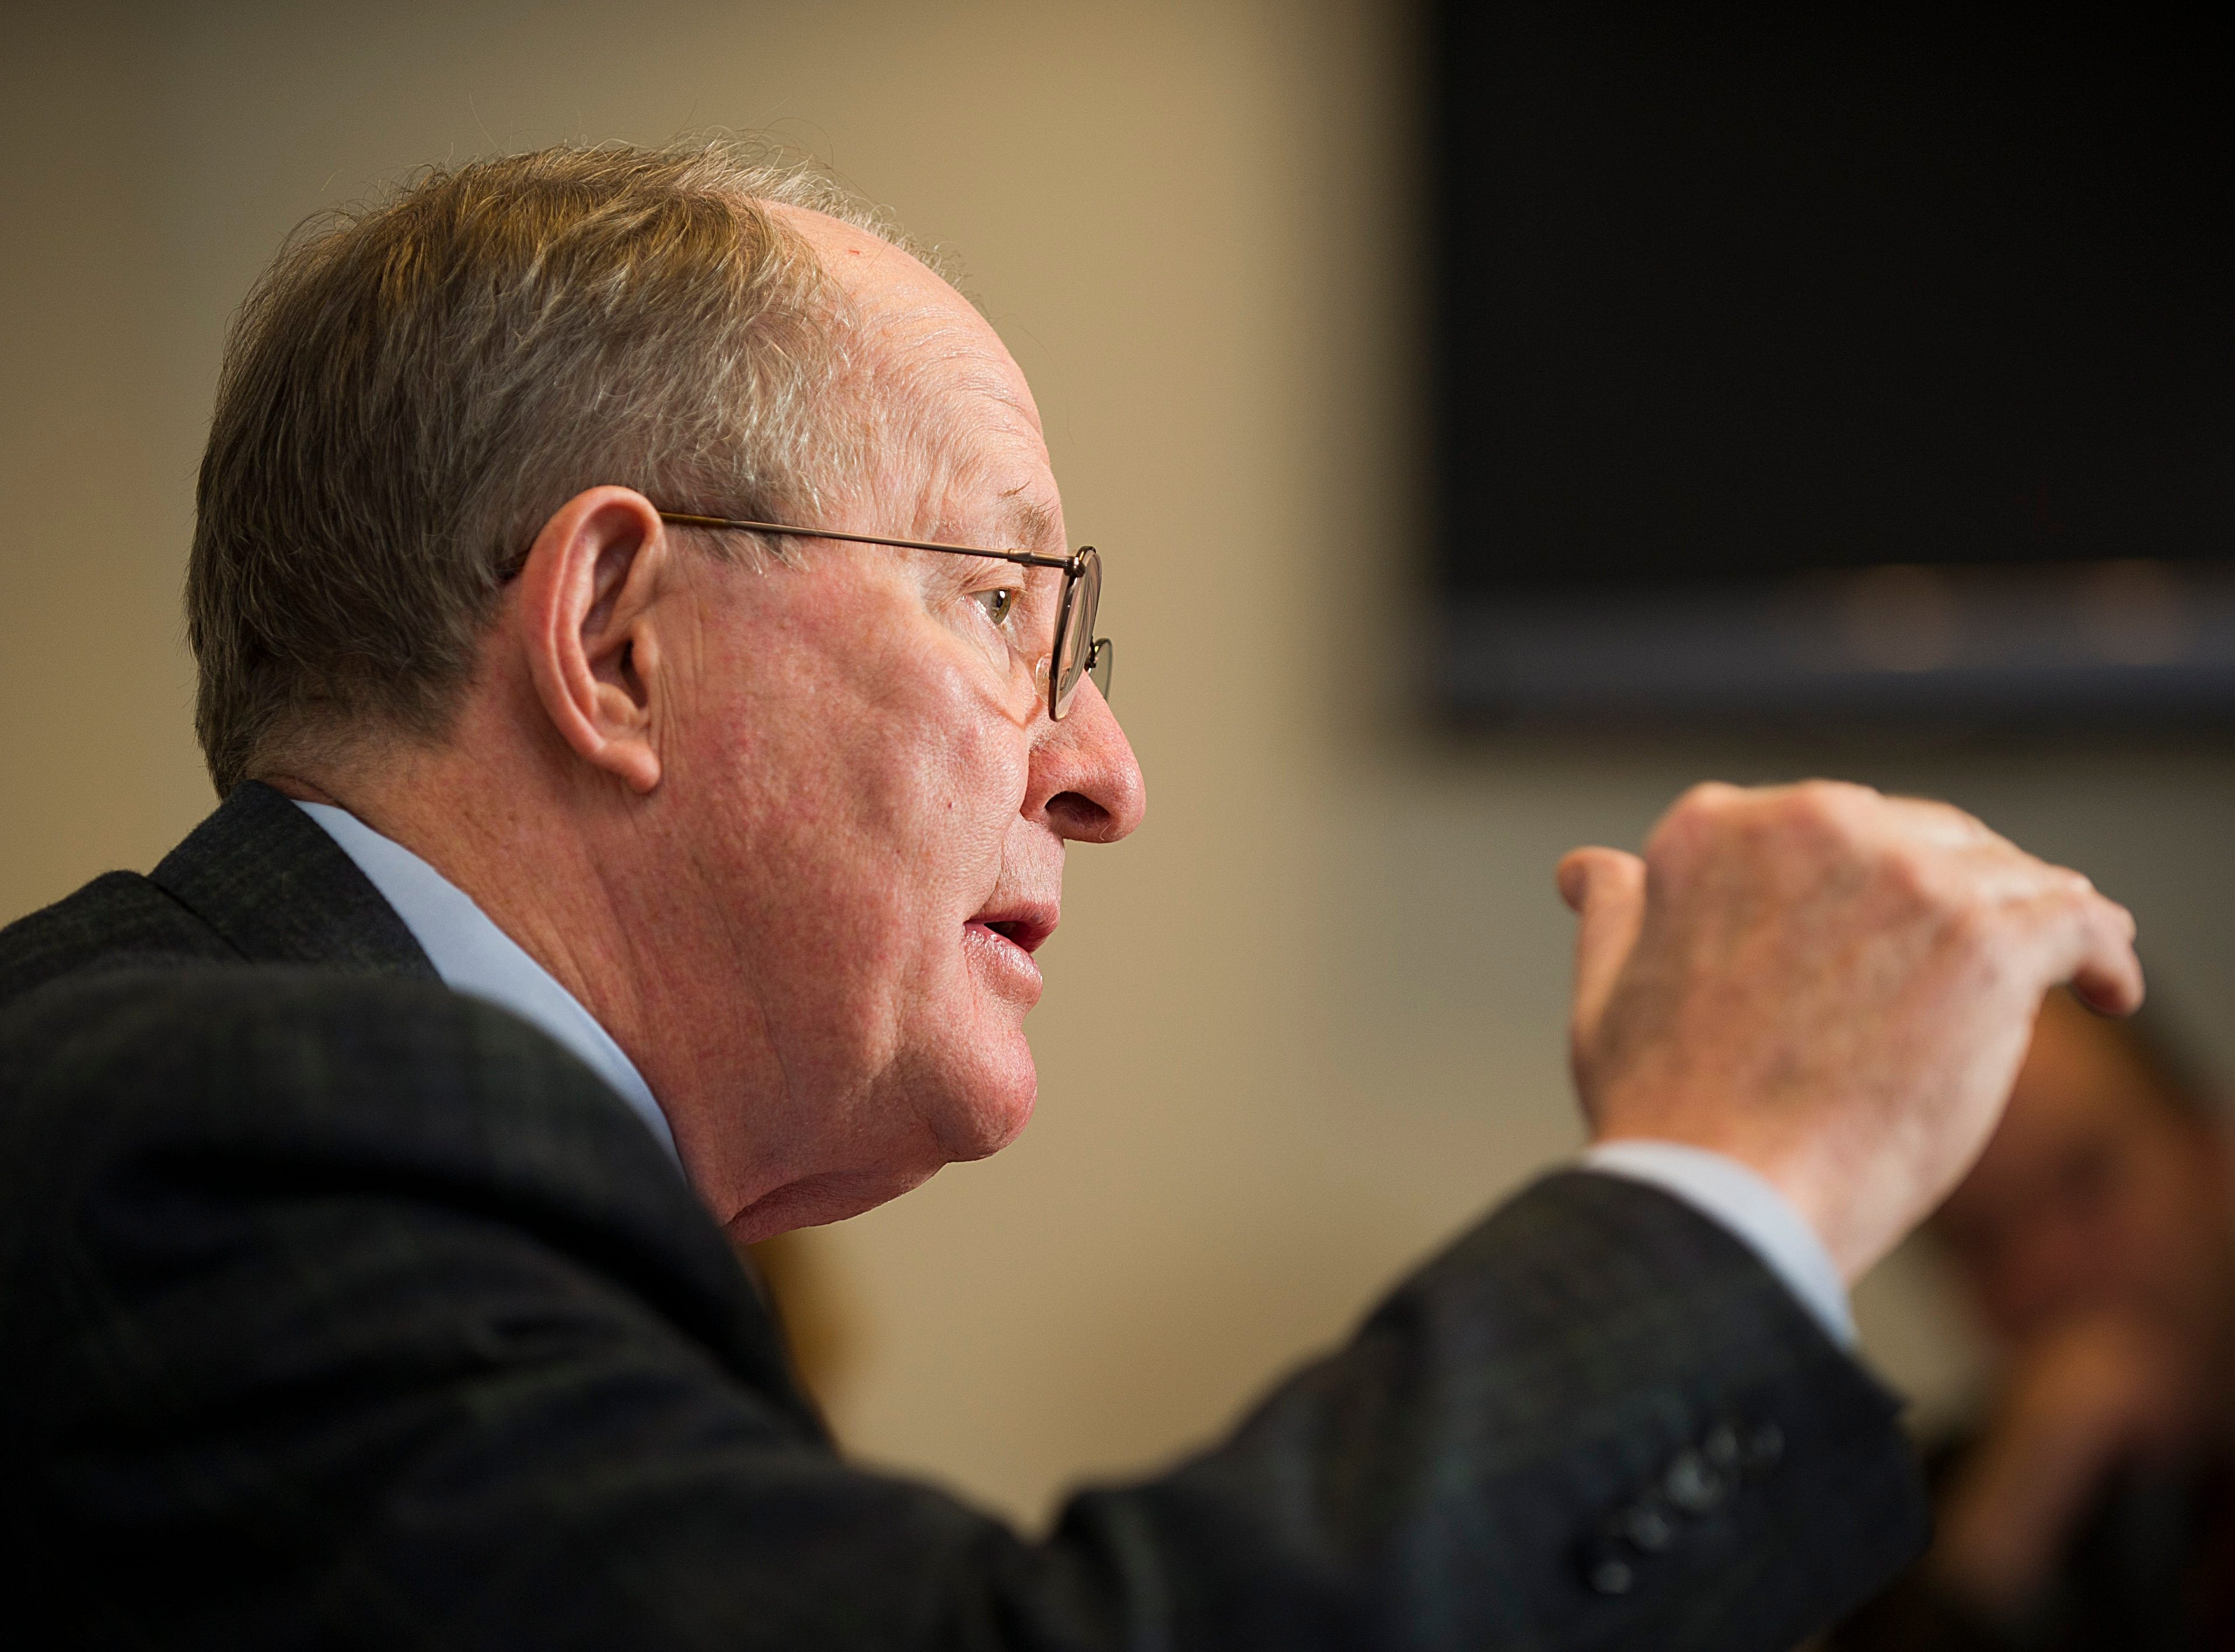 U.S. Sen. Lamar Alexander takes about public policy during a meeting of the News Sentinel editorial board on Tuesday, Dec. 3, 2013, at the News Sentinel office. Among the topics discussed is Republican alternative proposals to the Affordable Care Act.